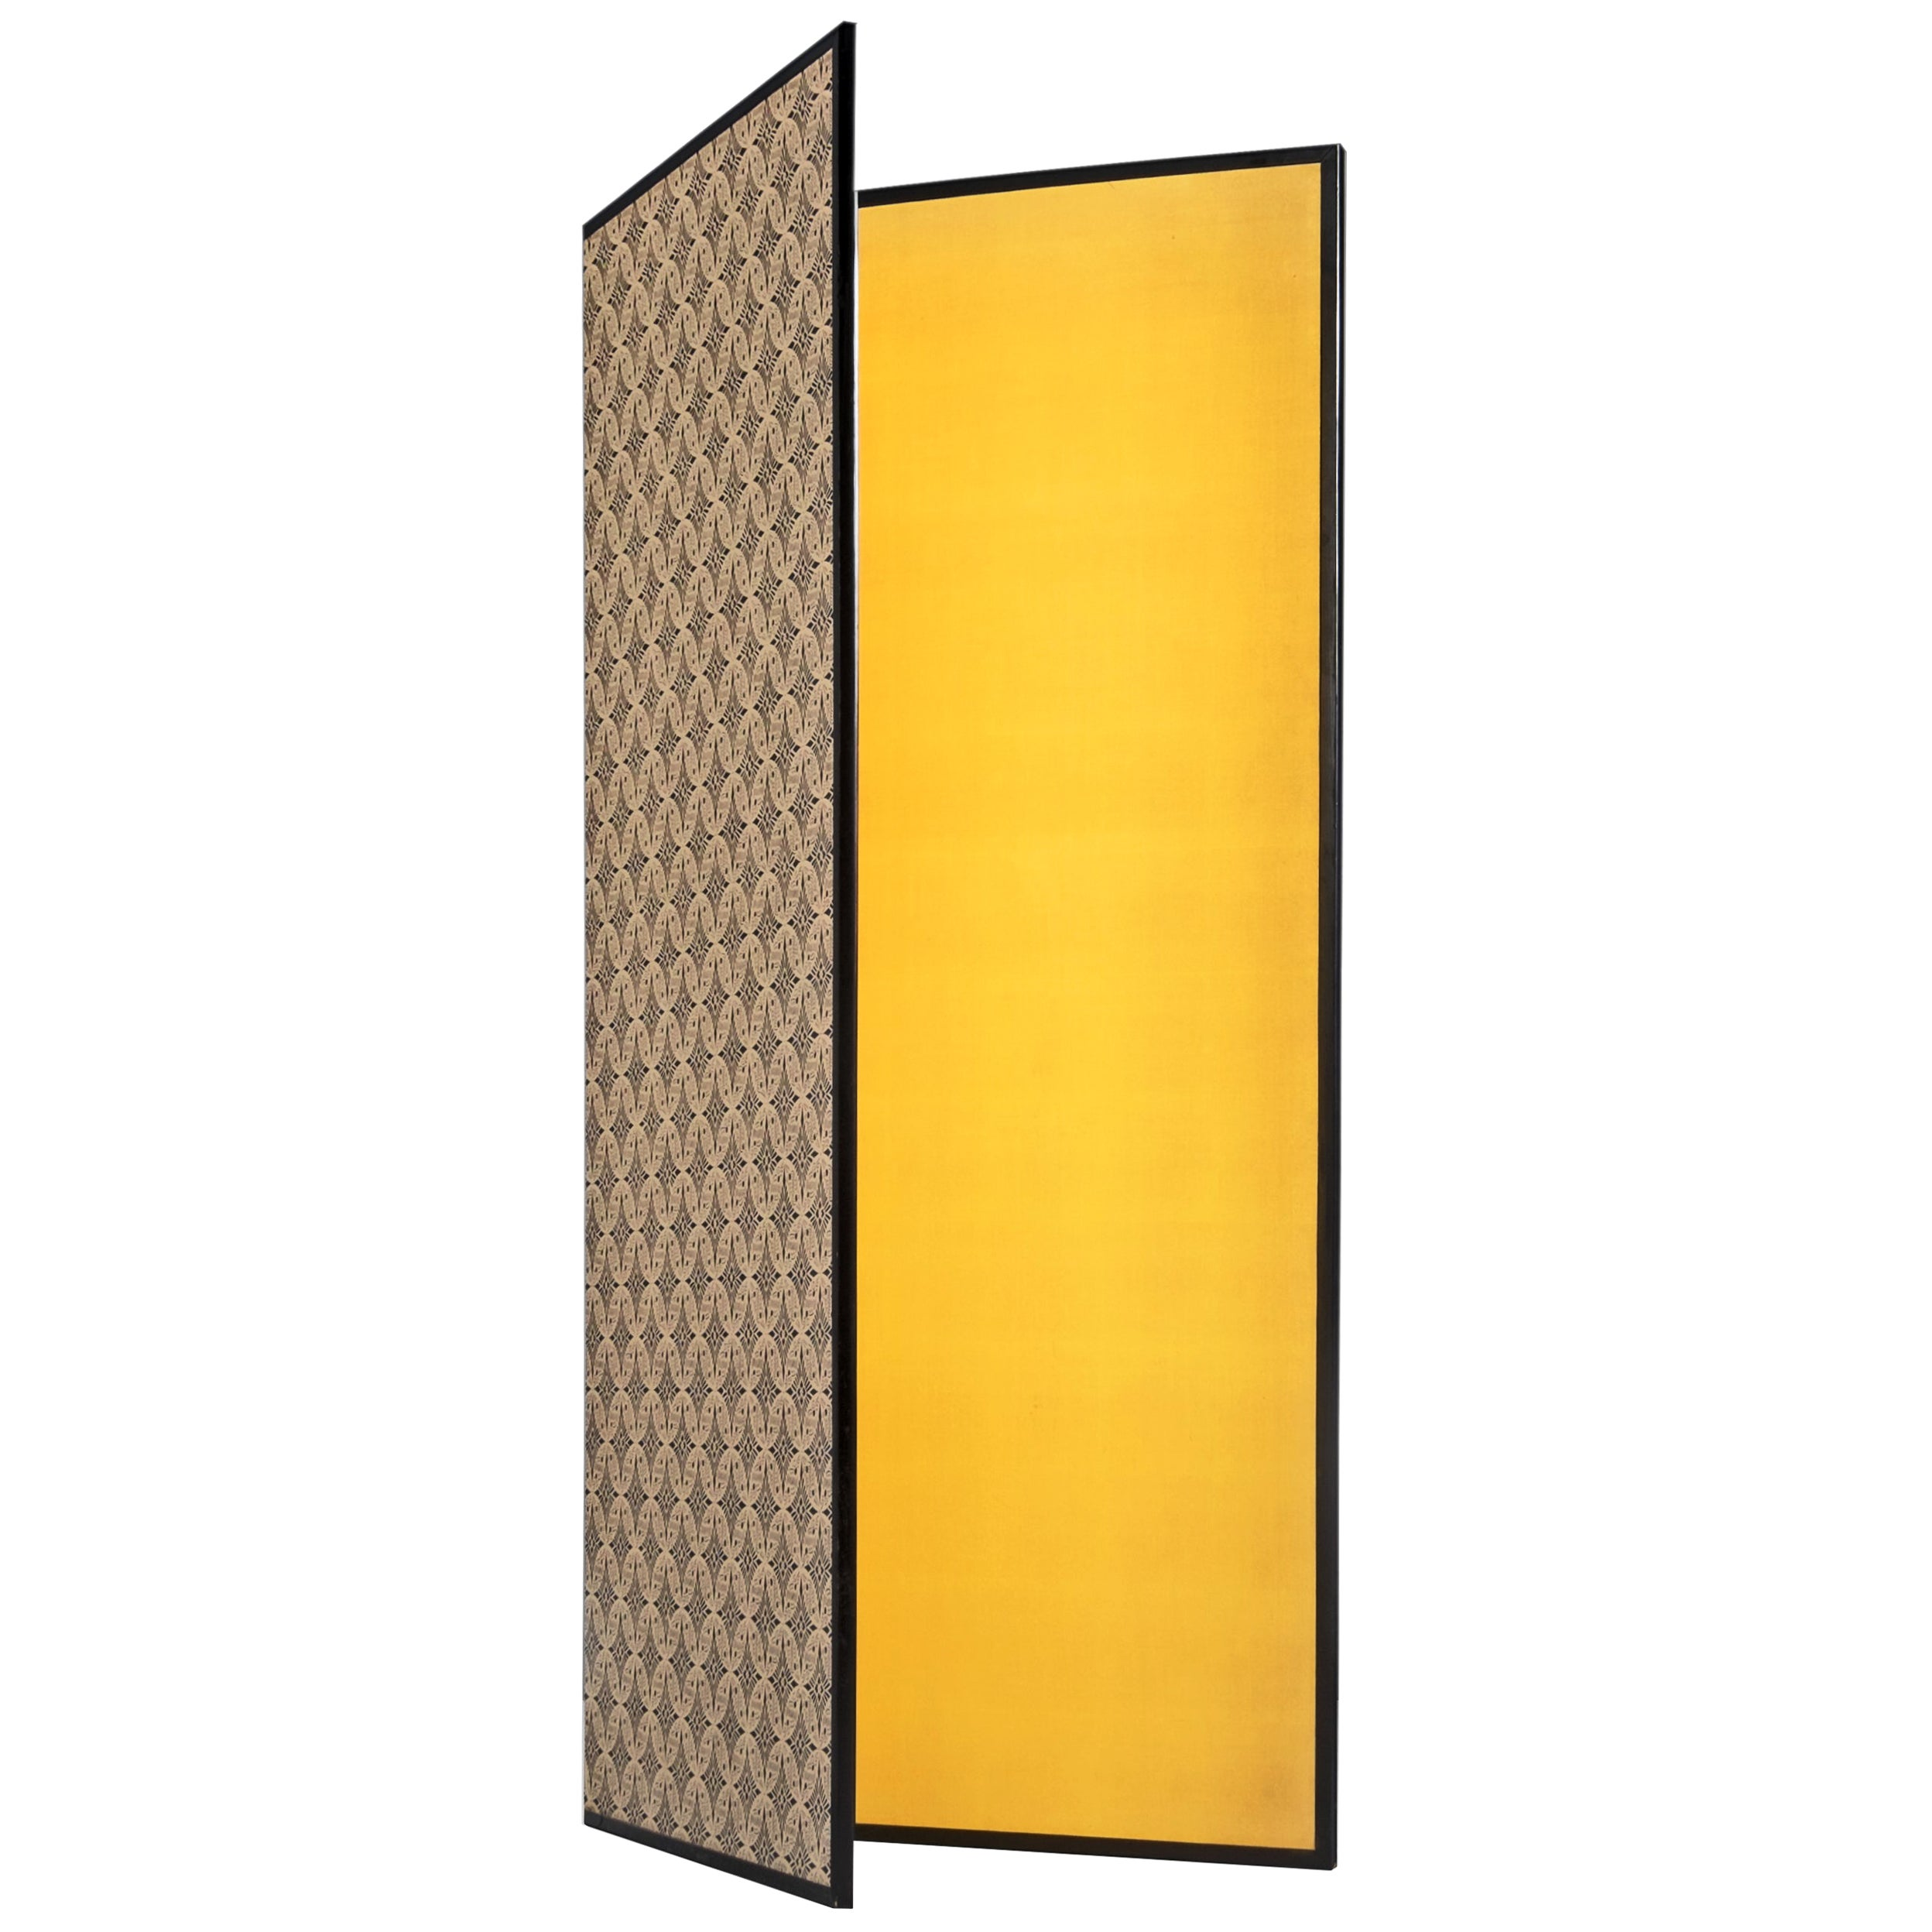 Gold Leaf Room Divider or Screen with Two Panels